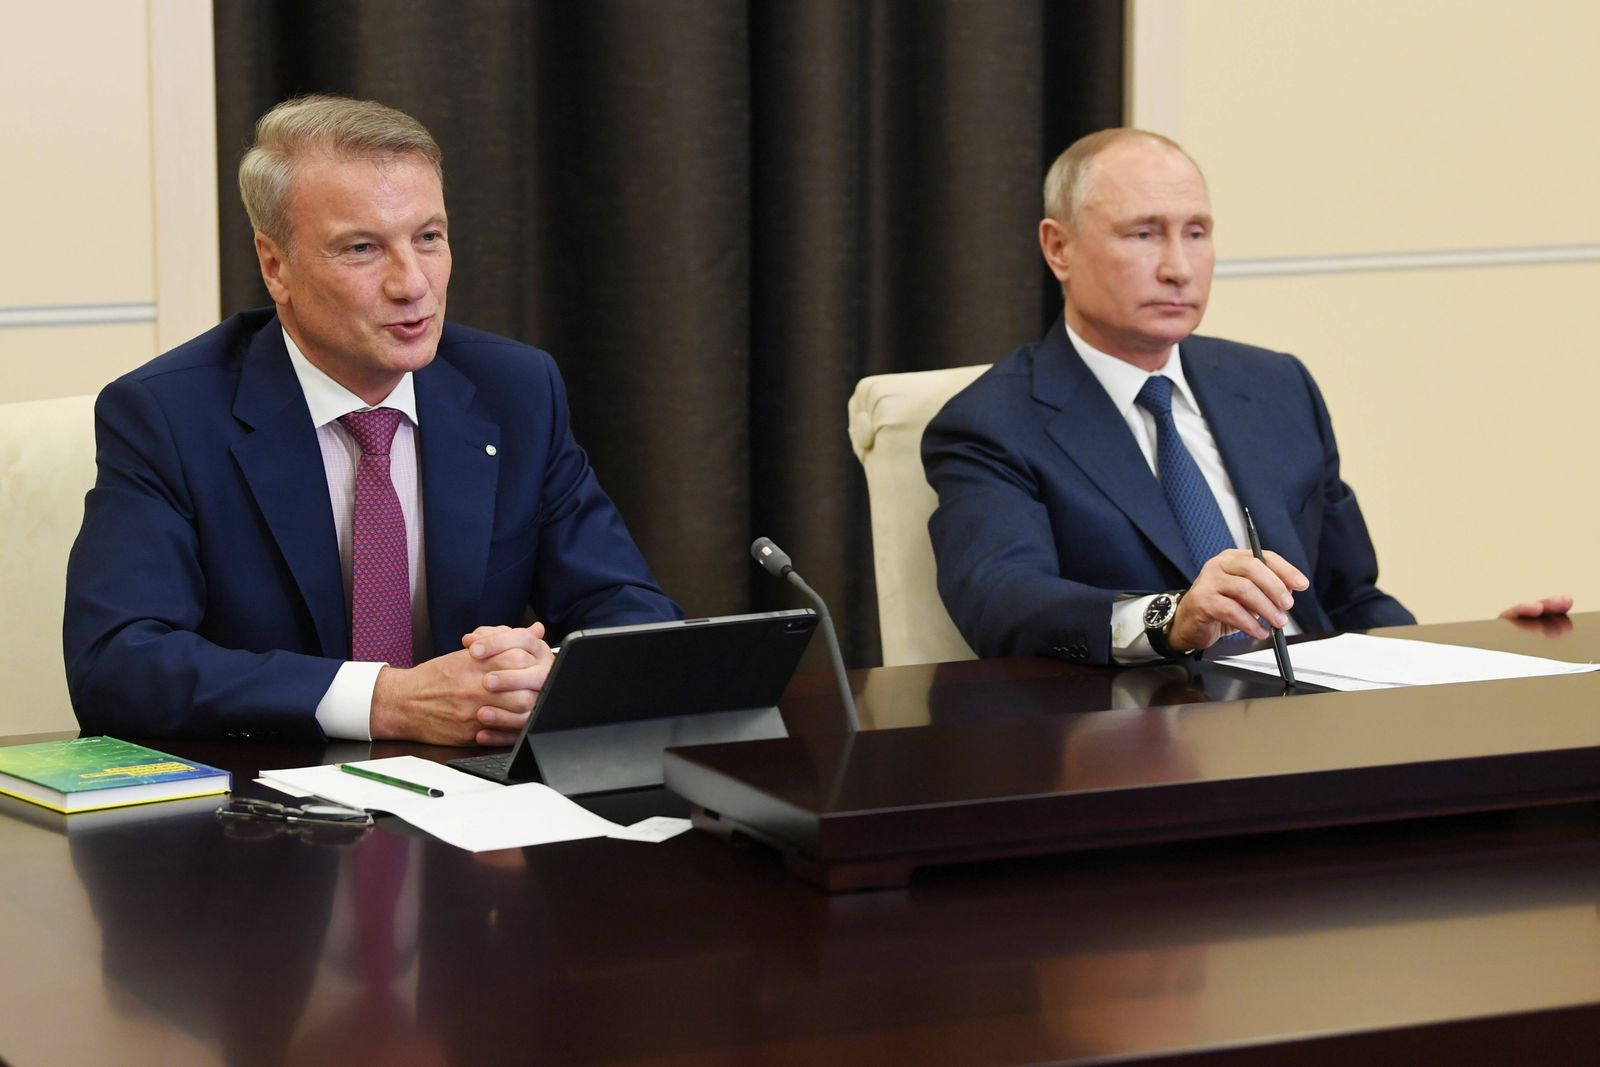 MOSCOW REGION, RUSSIA - DECEMBER 4, 2020: Sberbank CEO Herman Gref (L) and Russia s President Vladimir Putin are seen in